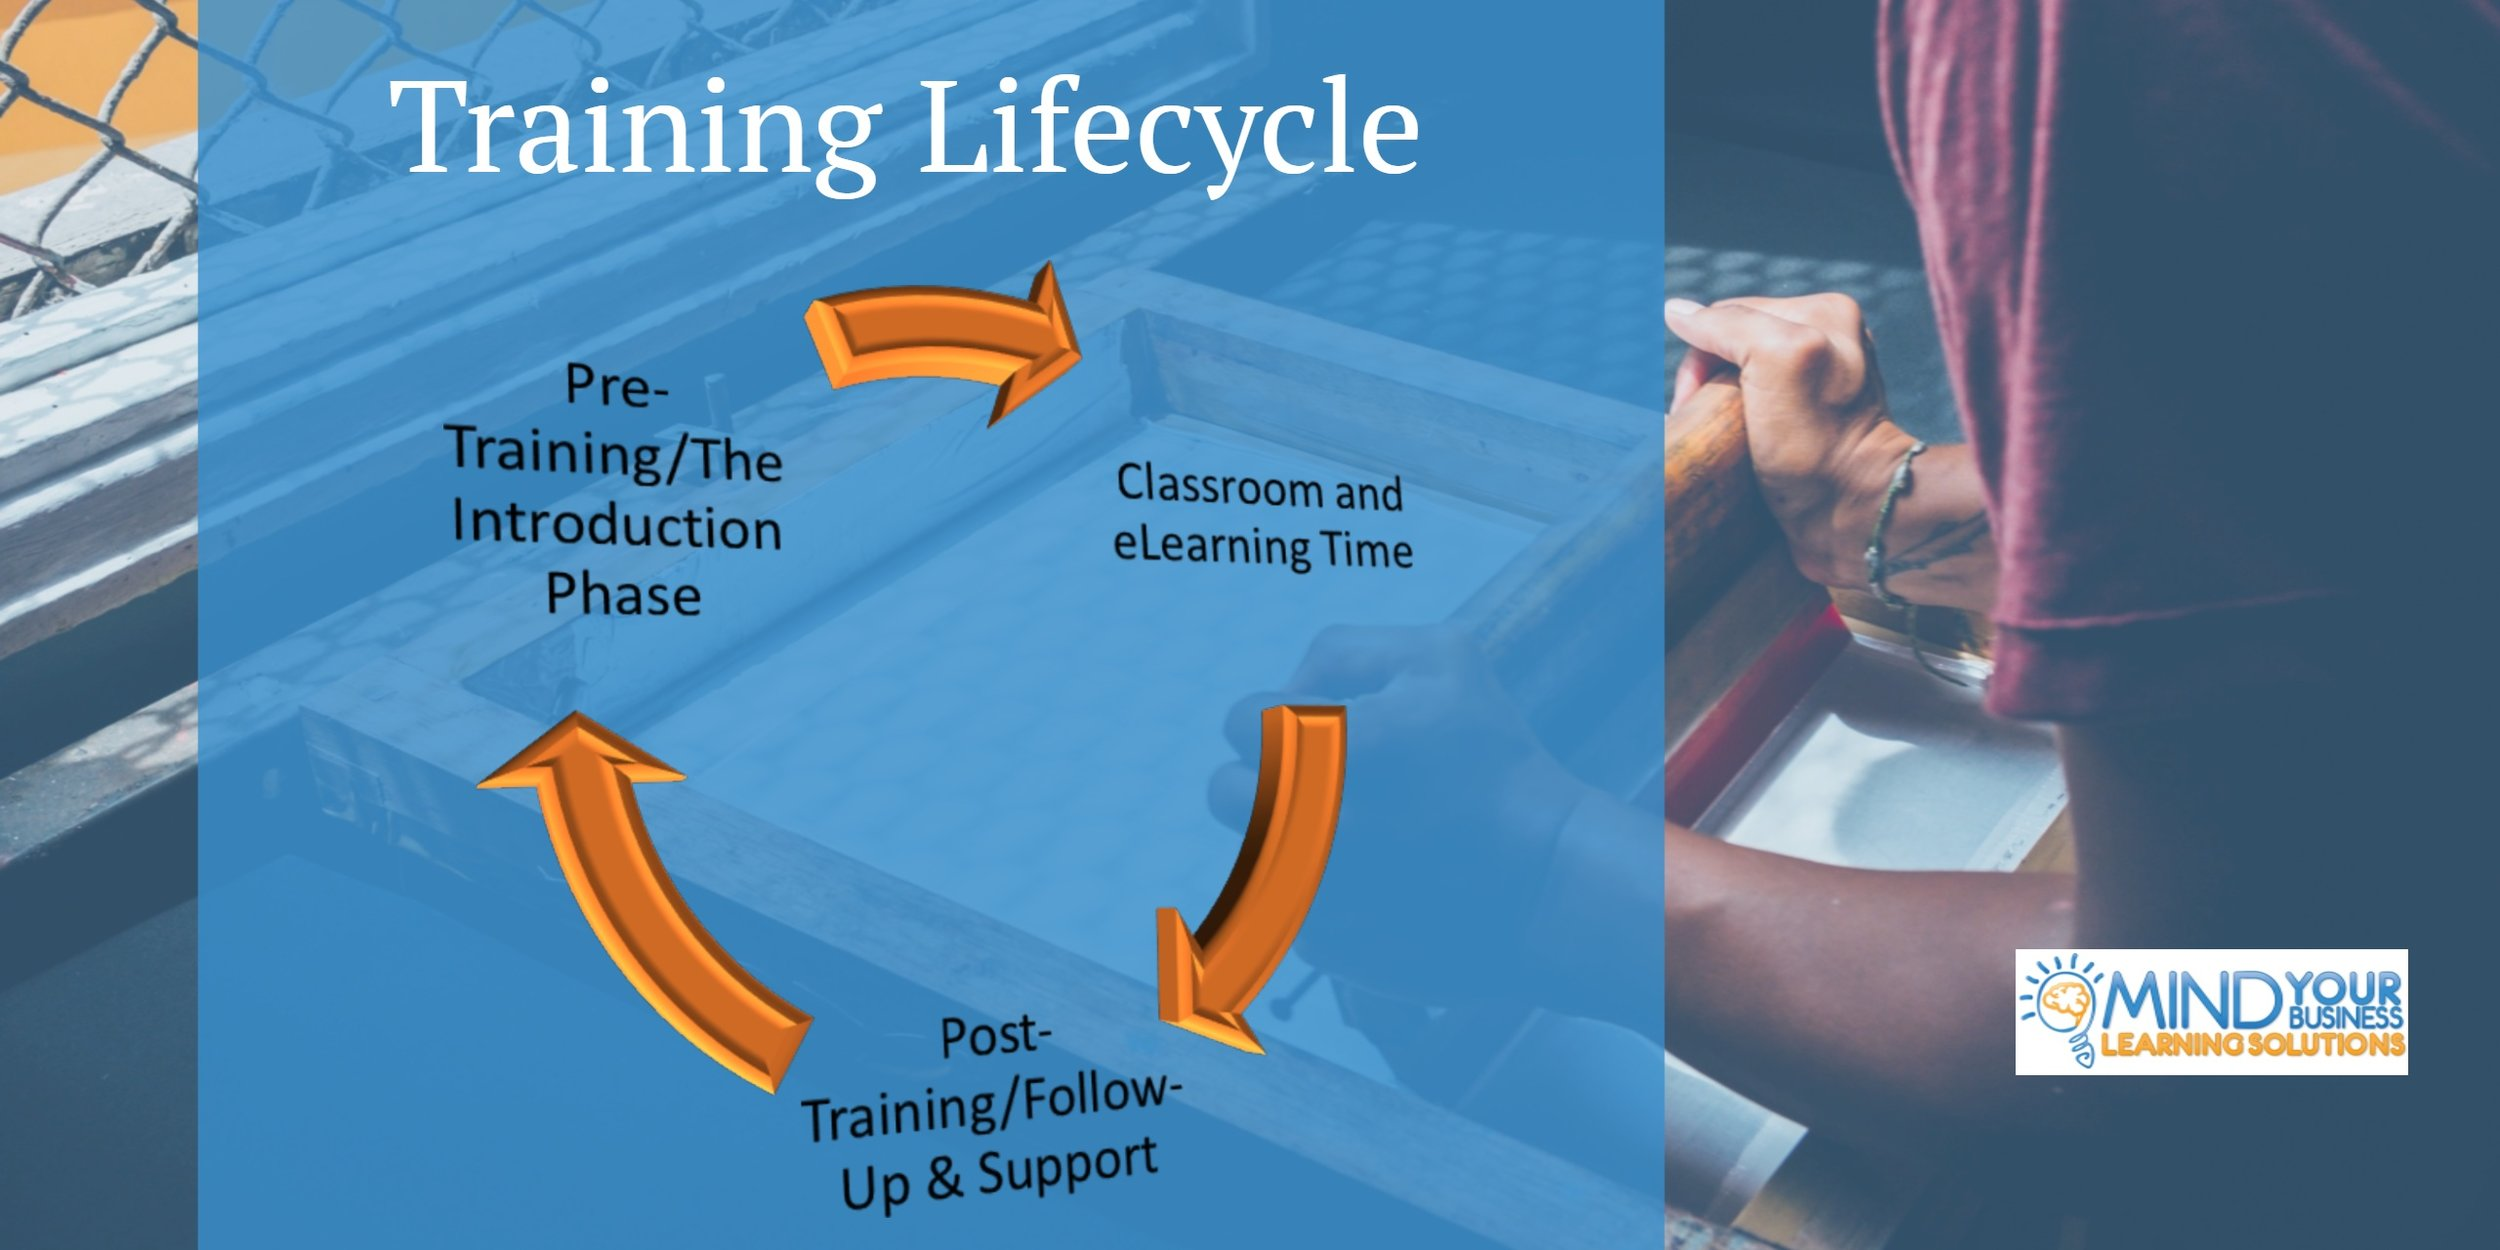 Our Methodology - Click to watch our approach to training.